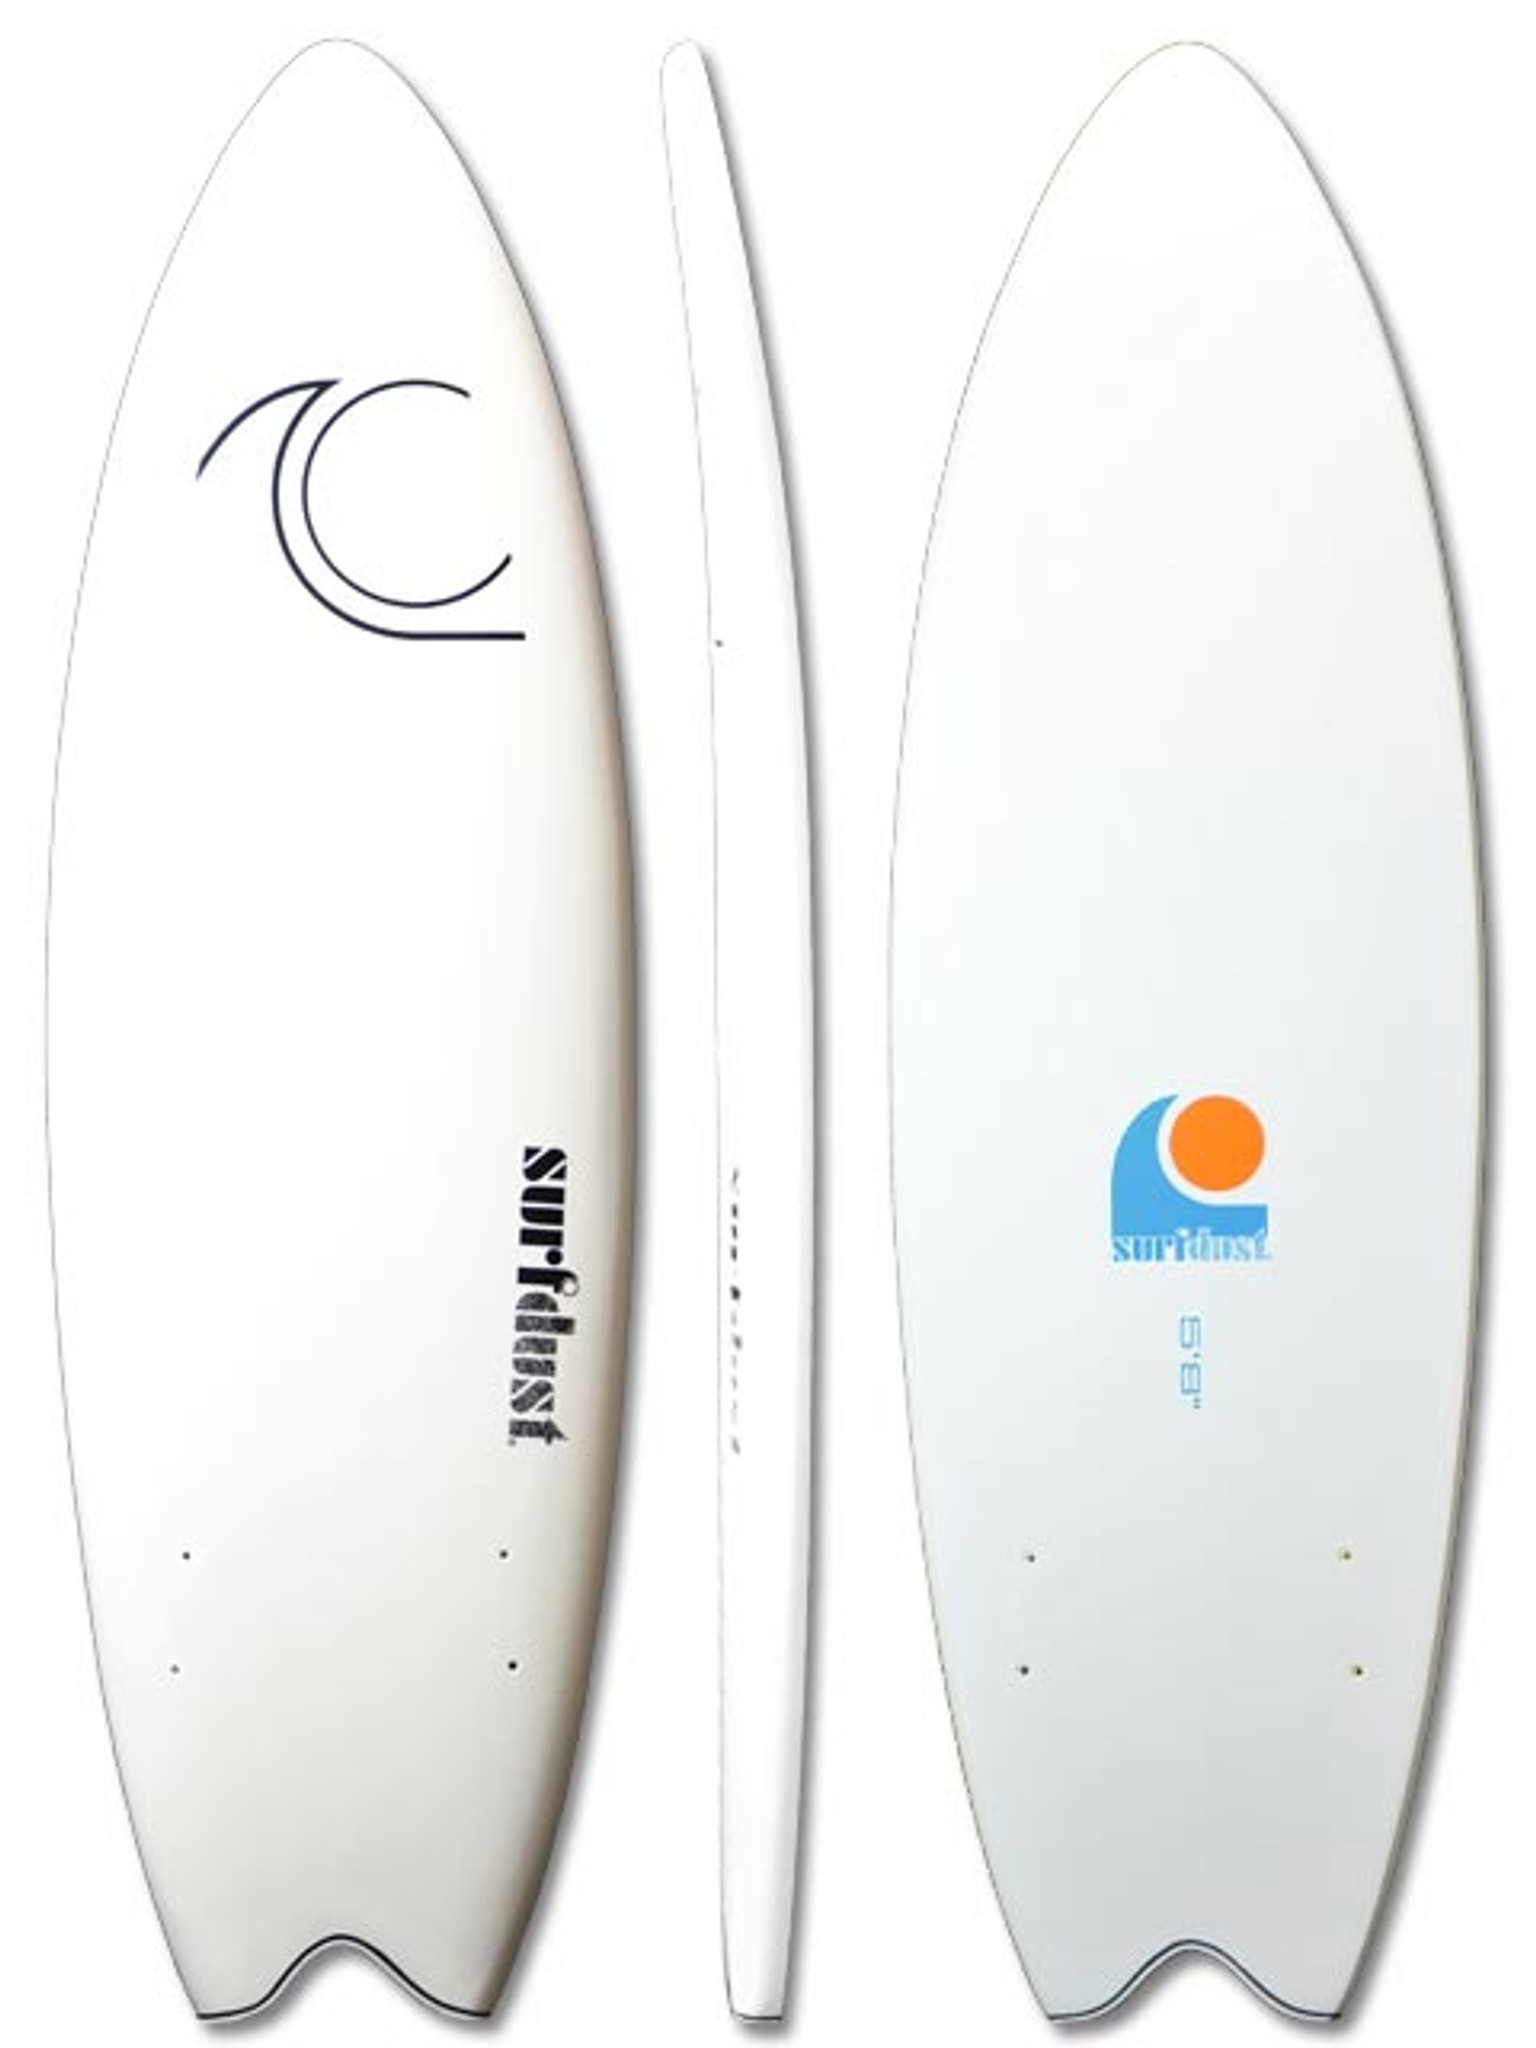 SURFDUST Primo 5.8ft Fish - Softboard - Twin Fin - Surfing